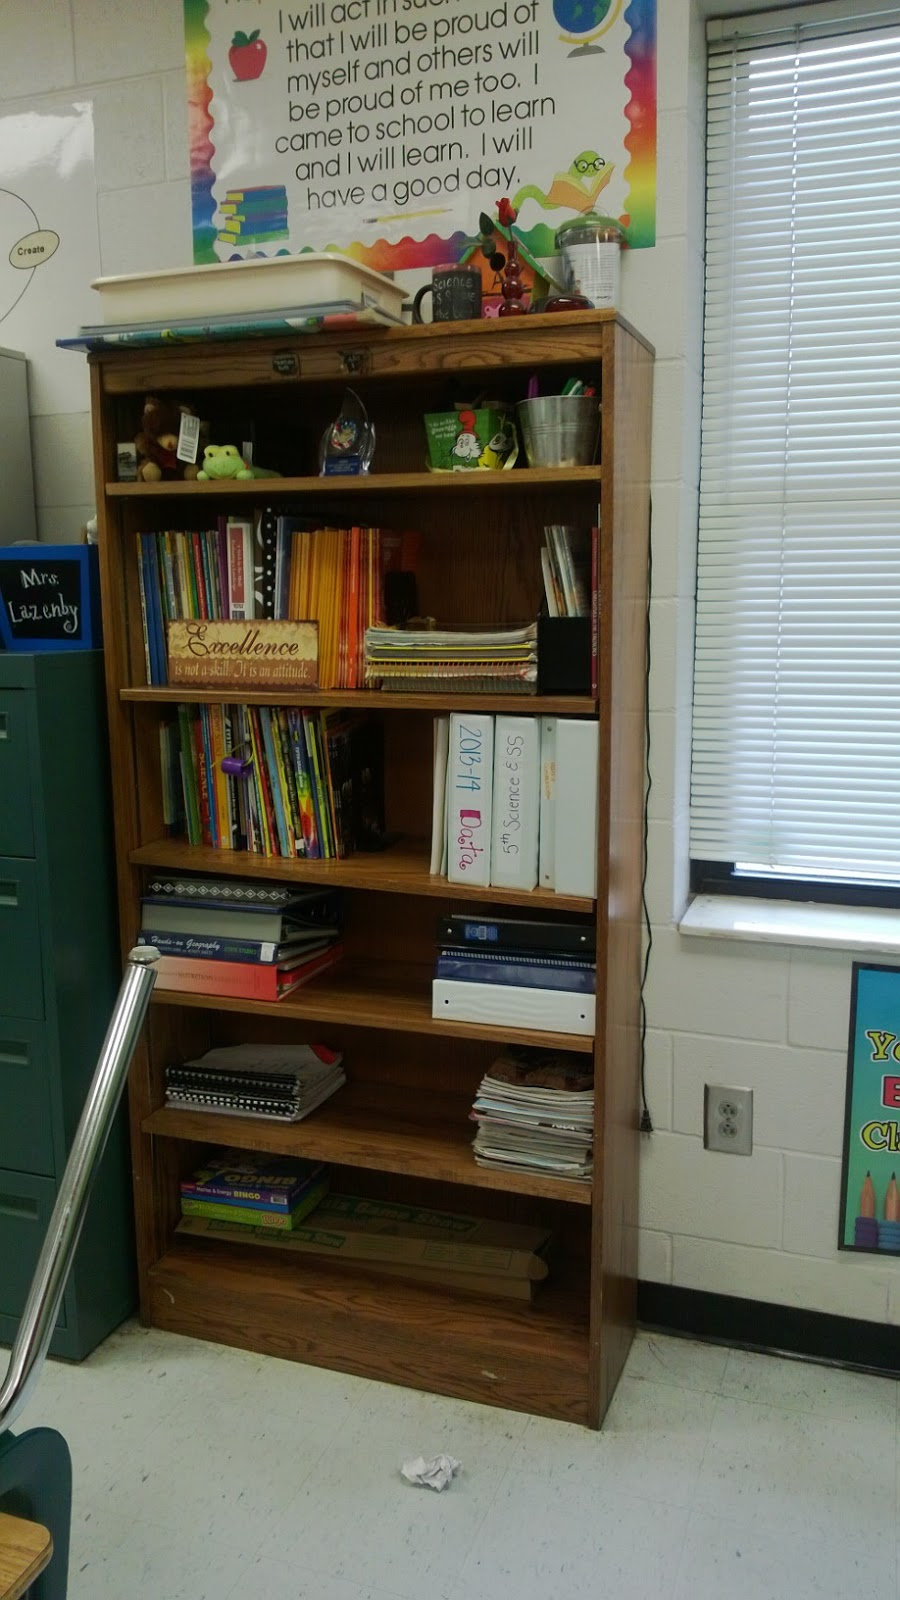 Classroom Bookshelf Ideas ~ Creative ideas for the upper elementary classroom